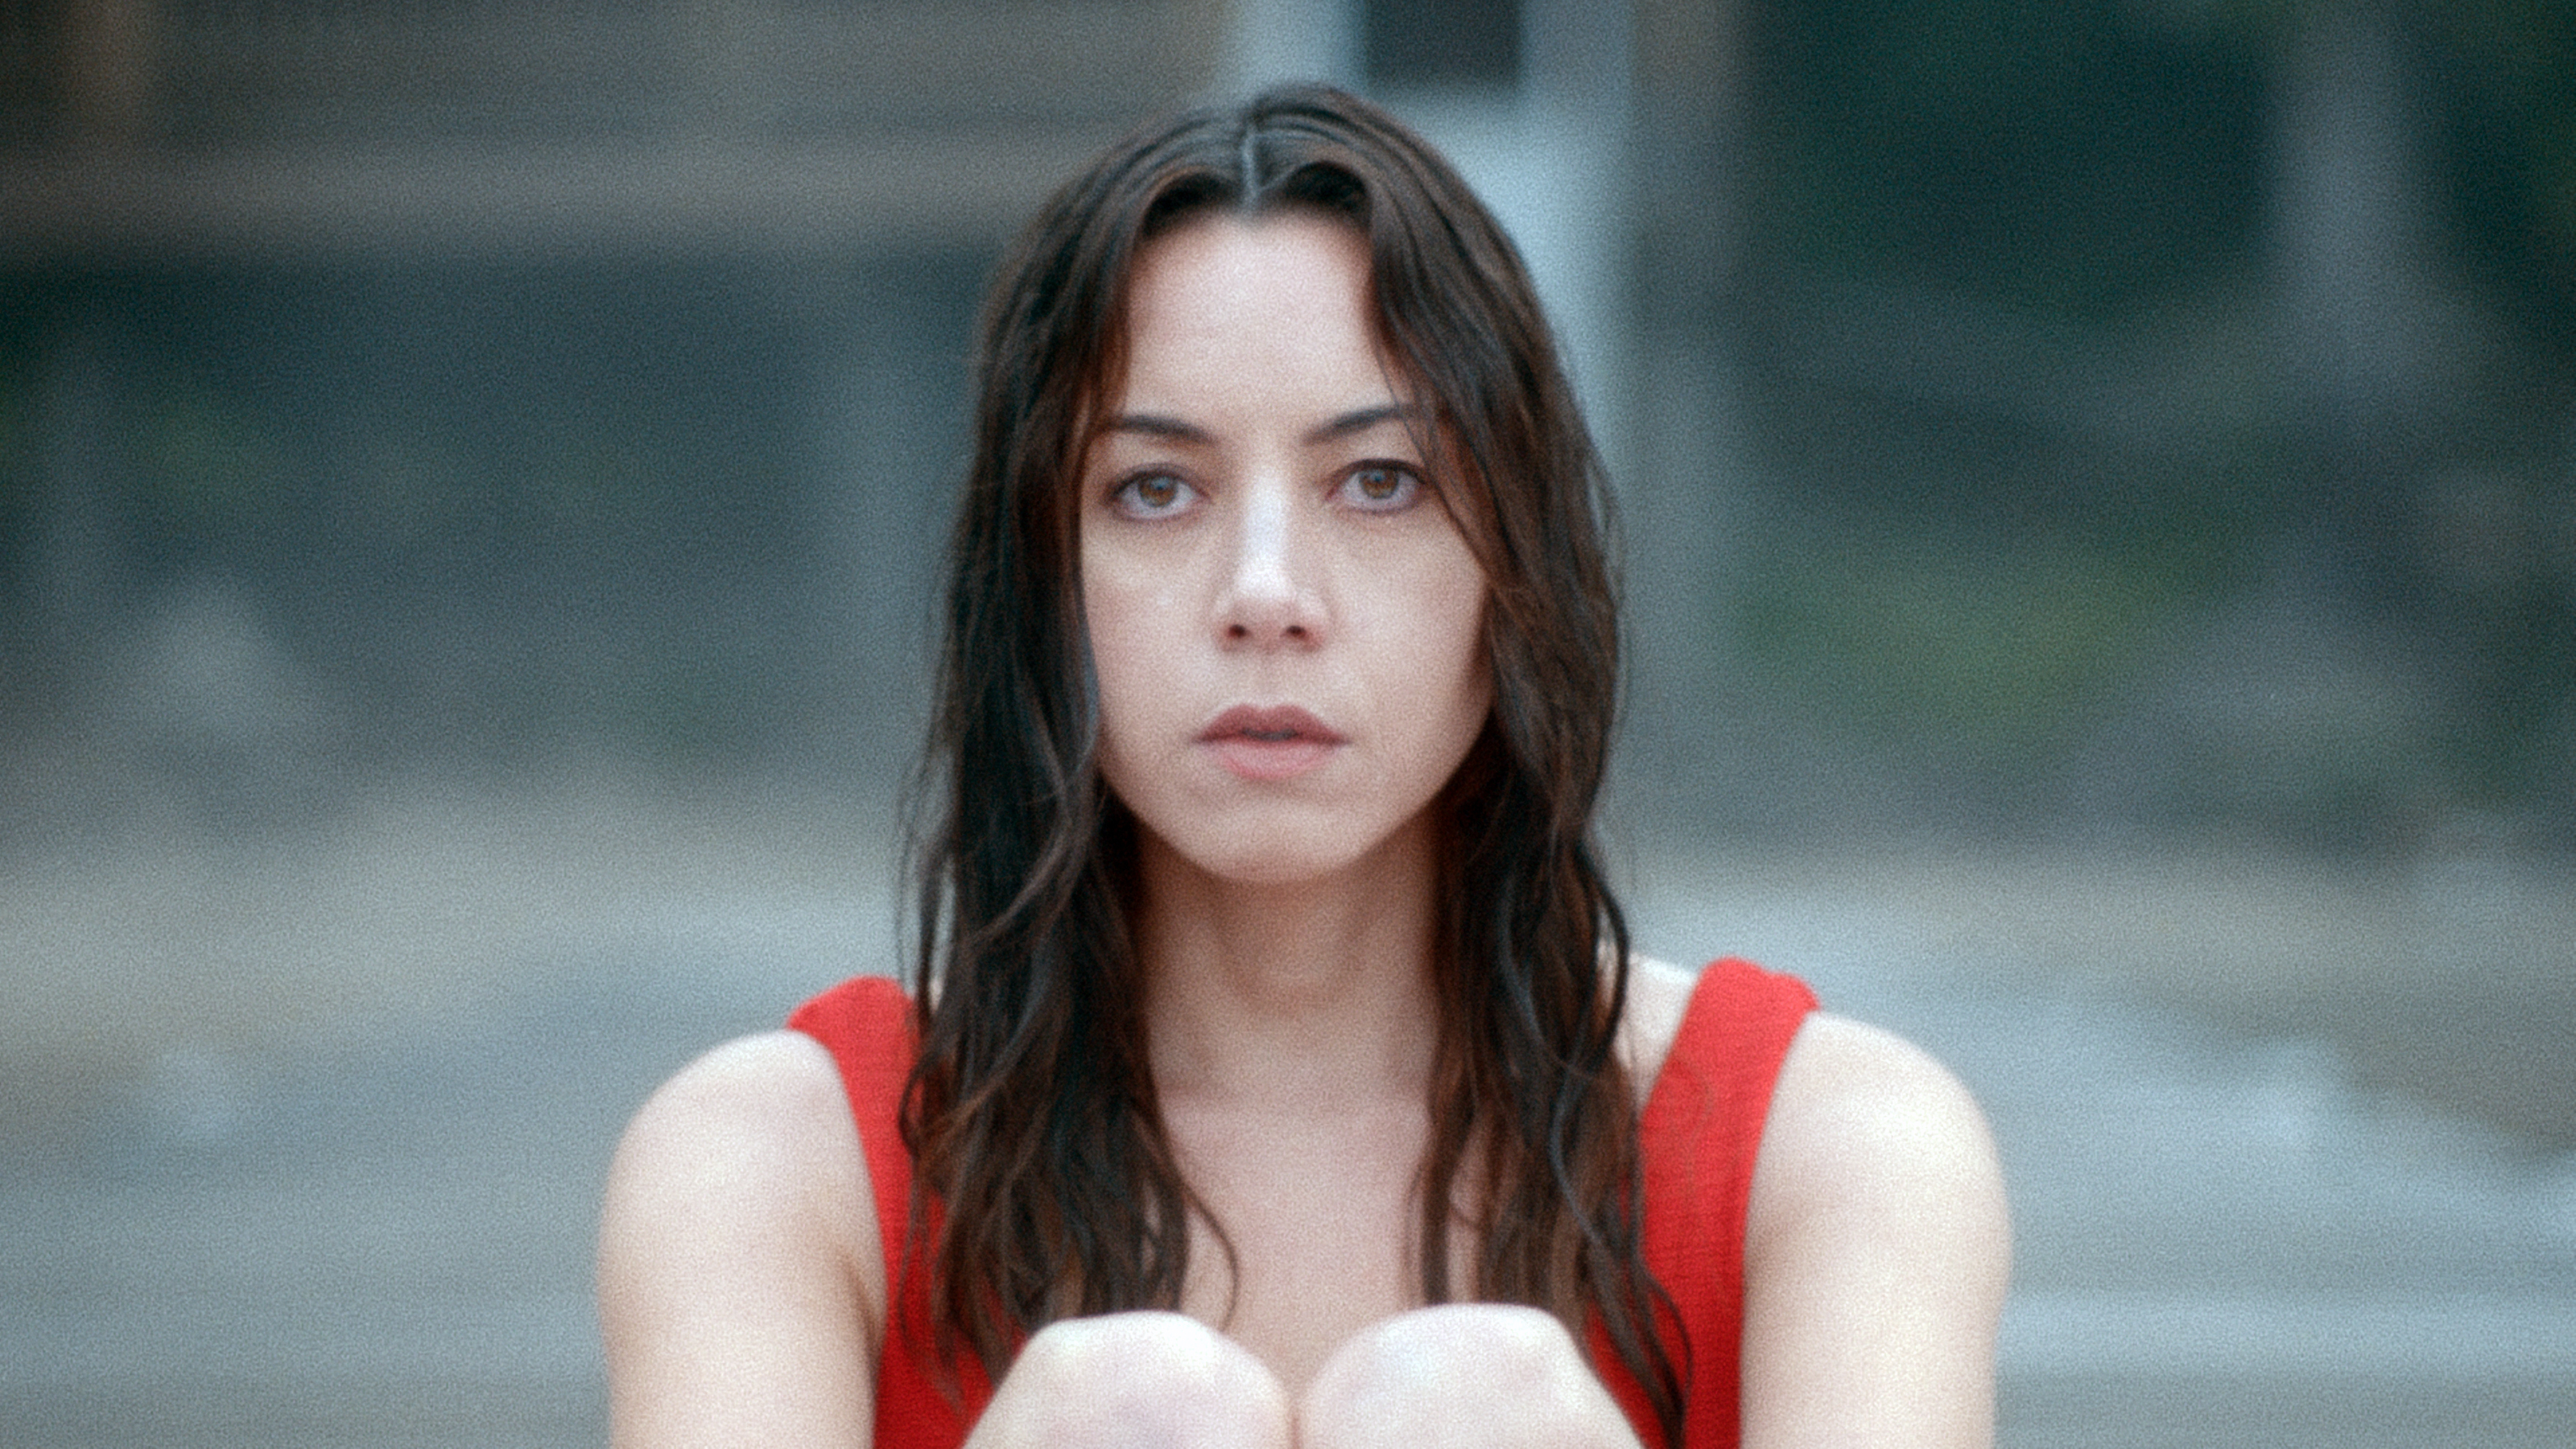 Review: A brilliant turn from Aubrey Plaza in 'Black Bear'